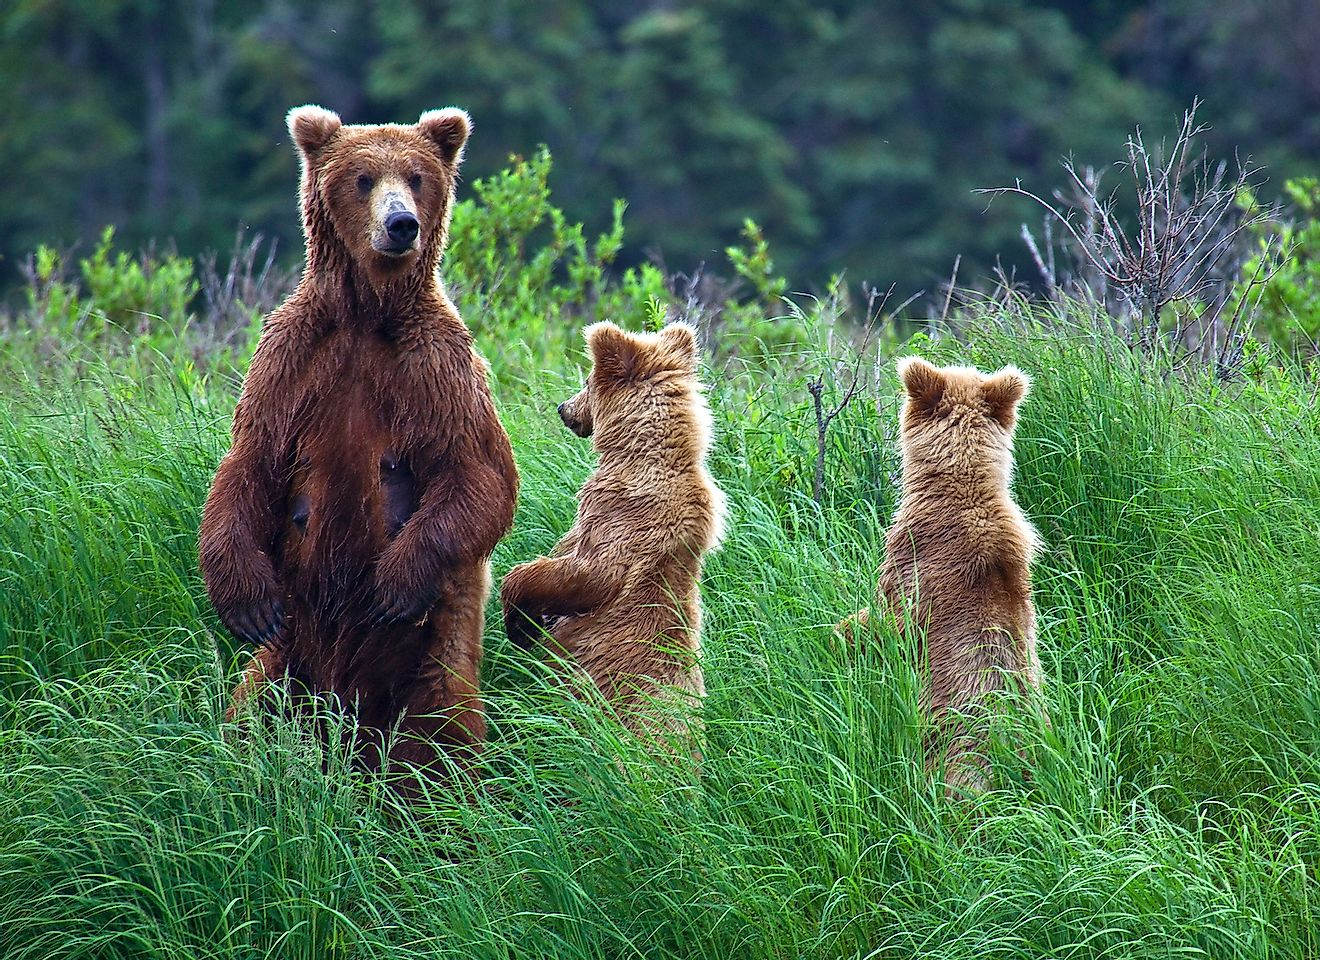 Grizly Bears at Katmai National Park, Alaska, USA. Image credit: Gleb Tarro/Shutterstock.com